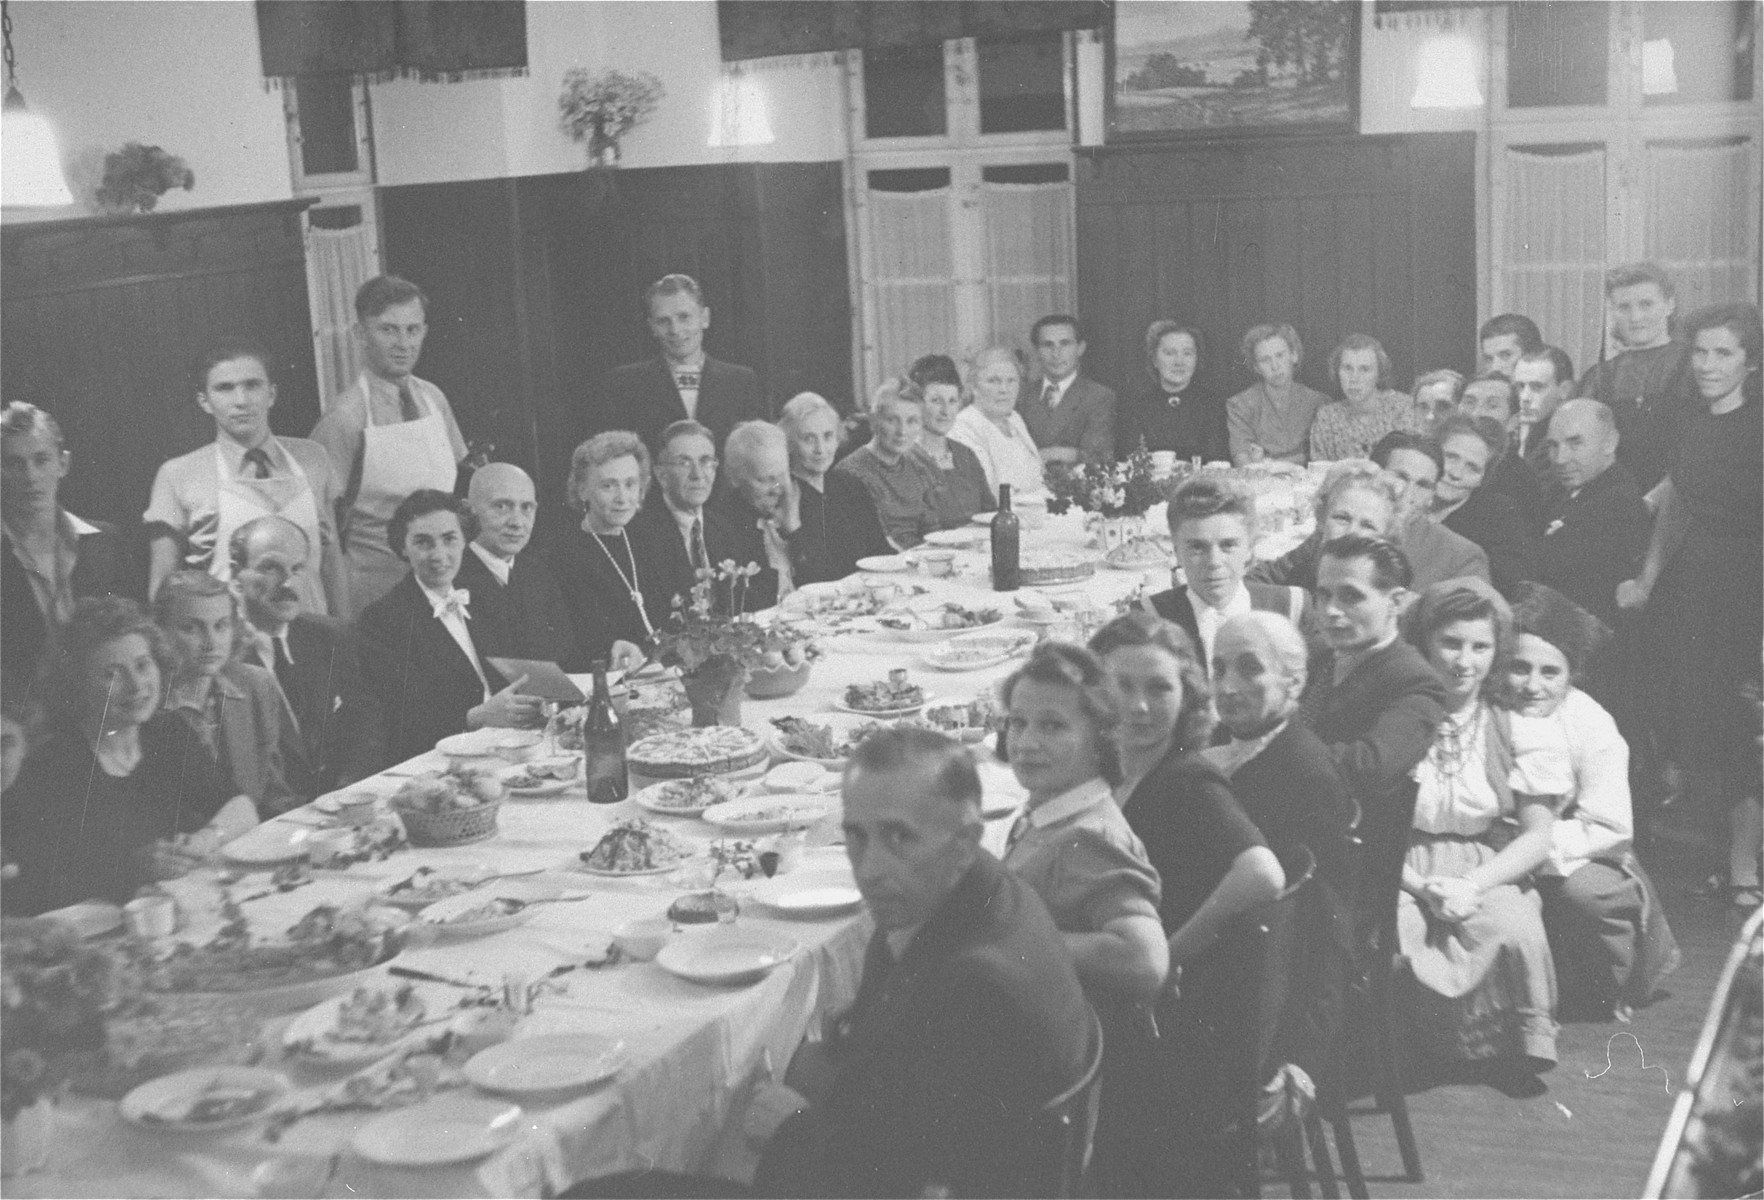 A dinner at the Kloster Indersdorf DP children's center.  UNRRA relief worker, Greta Fischer, is seated fourth from the left.